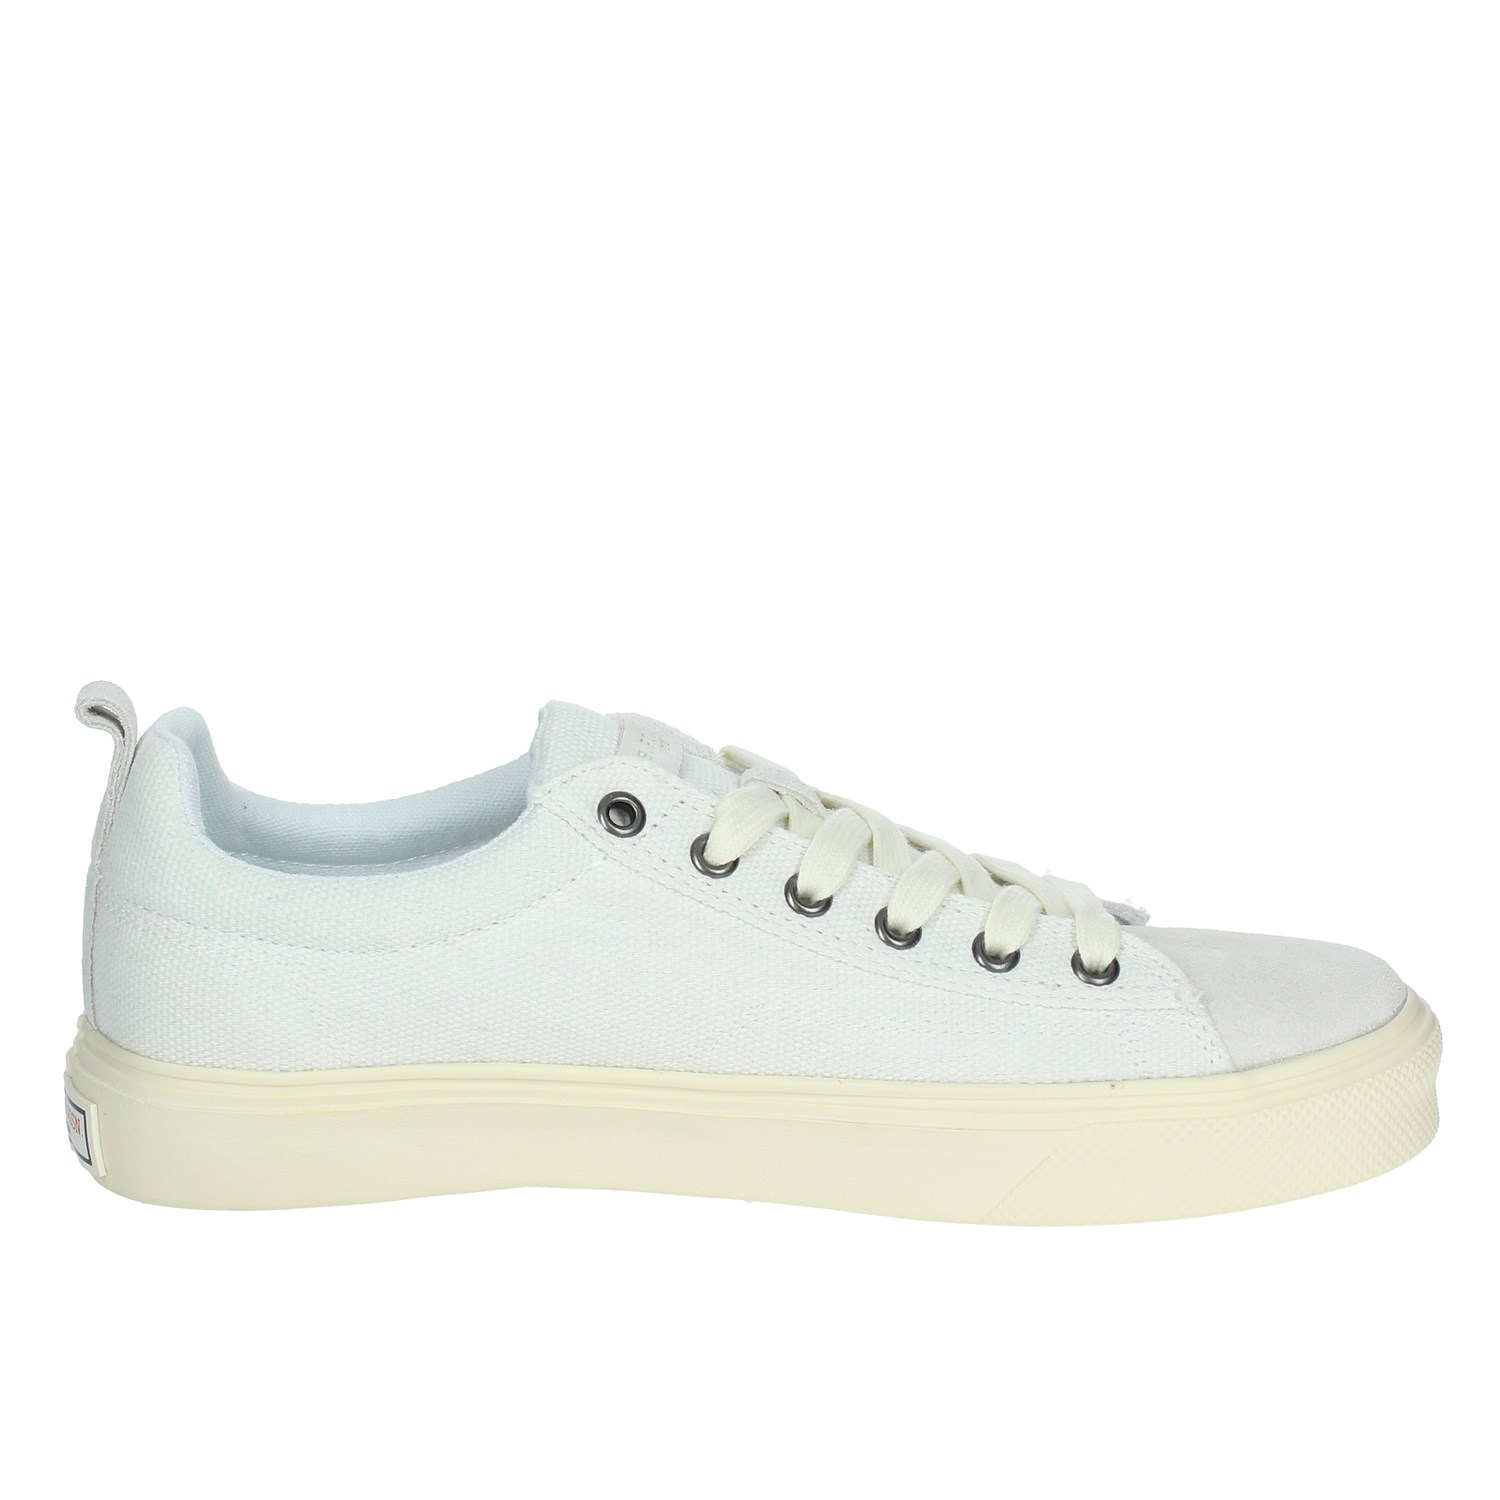 Low Sneakers FREDY4045S8/C1 Man U.s. Polo Assn FREDY4045S8/C1 Sneakers Spring/Summer c4410c